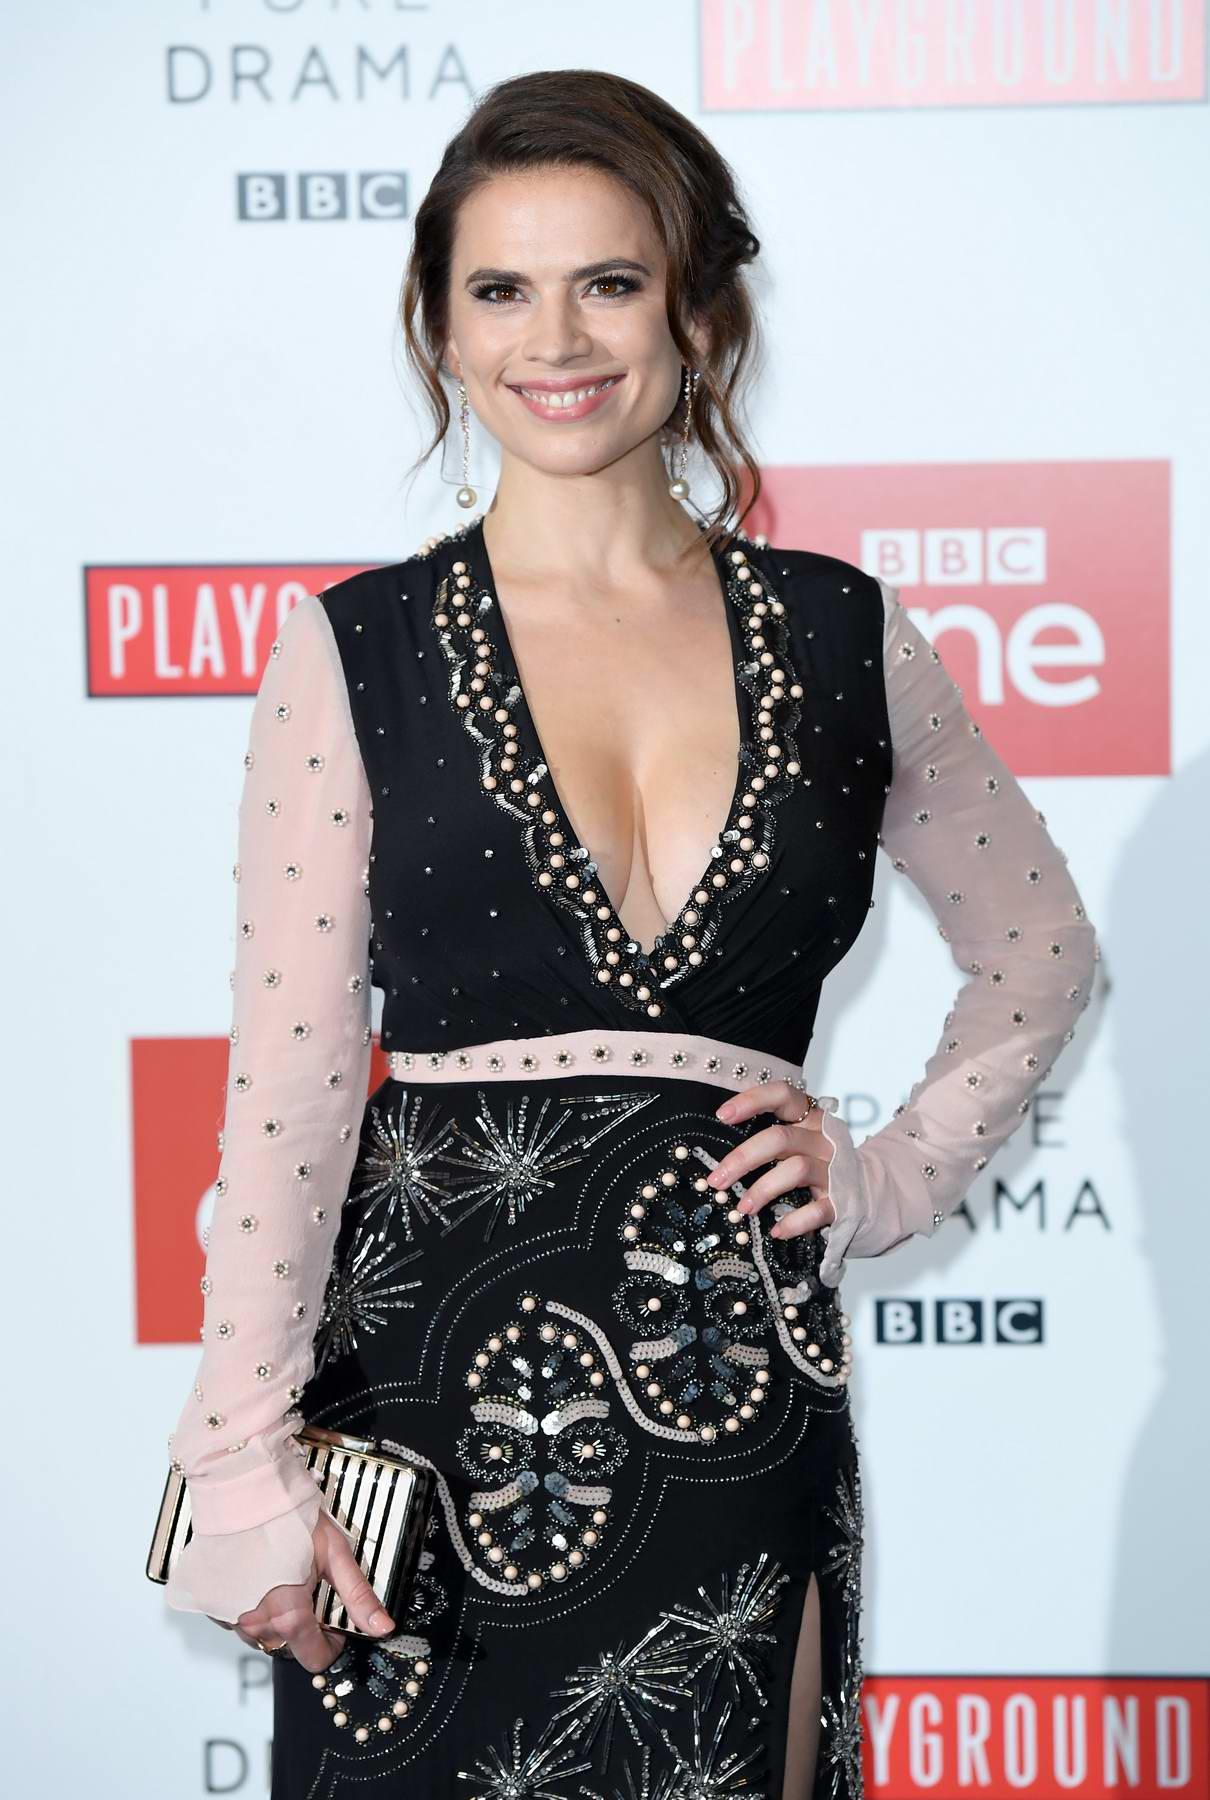 Hayley Atwell at the 'Howard's End' photocall at BFI Southbank in London